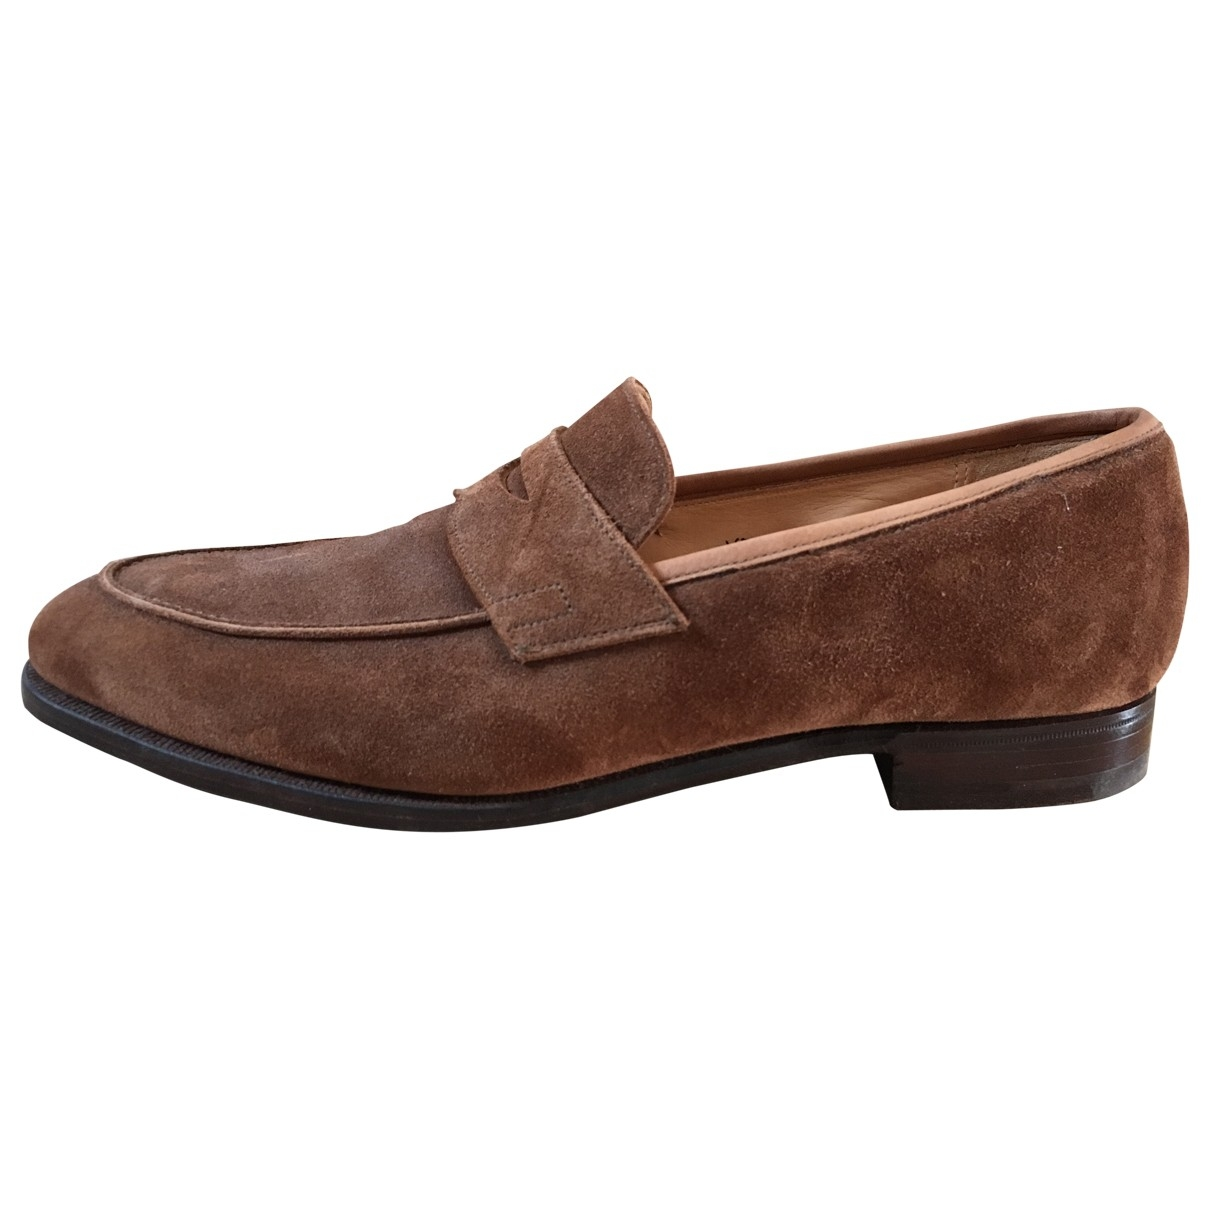 Crockett& Jones \N Camel Suede Flats for Men 41 EU